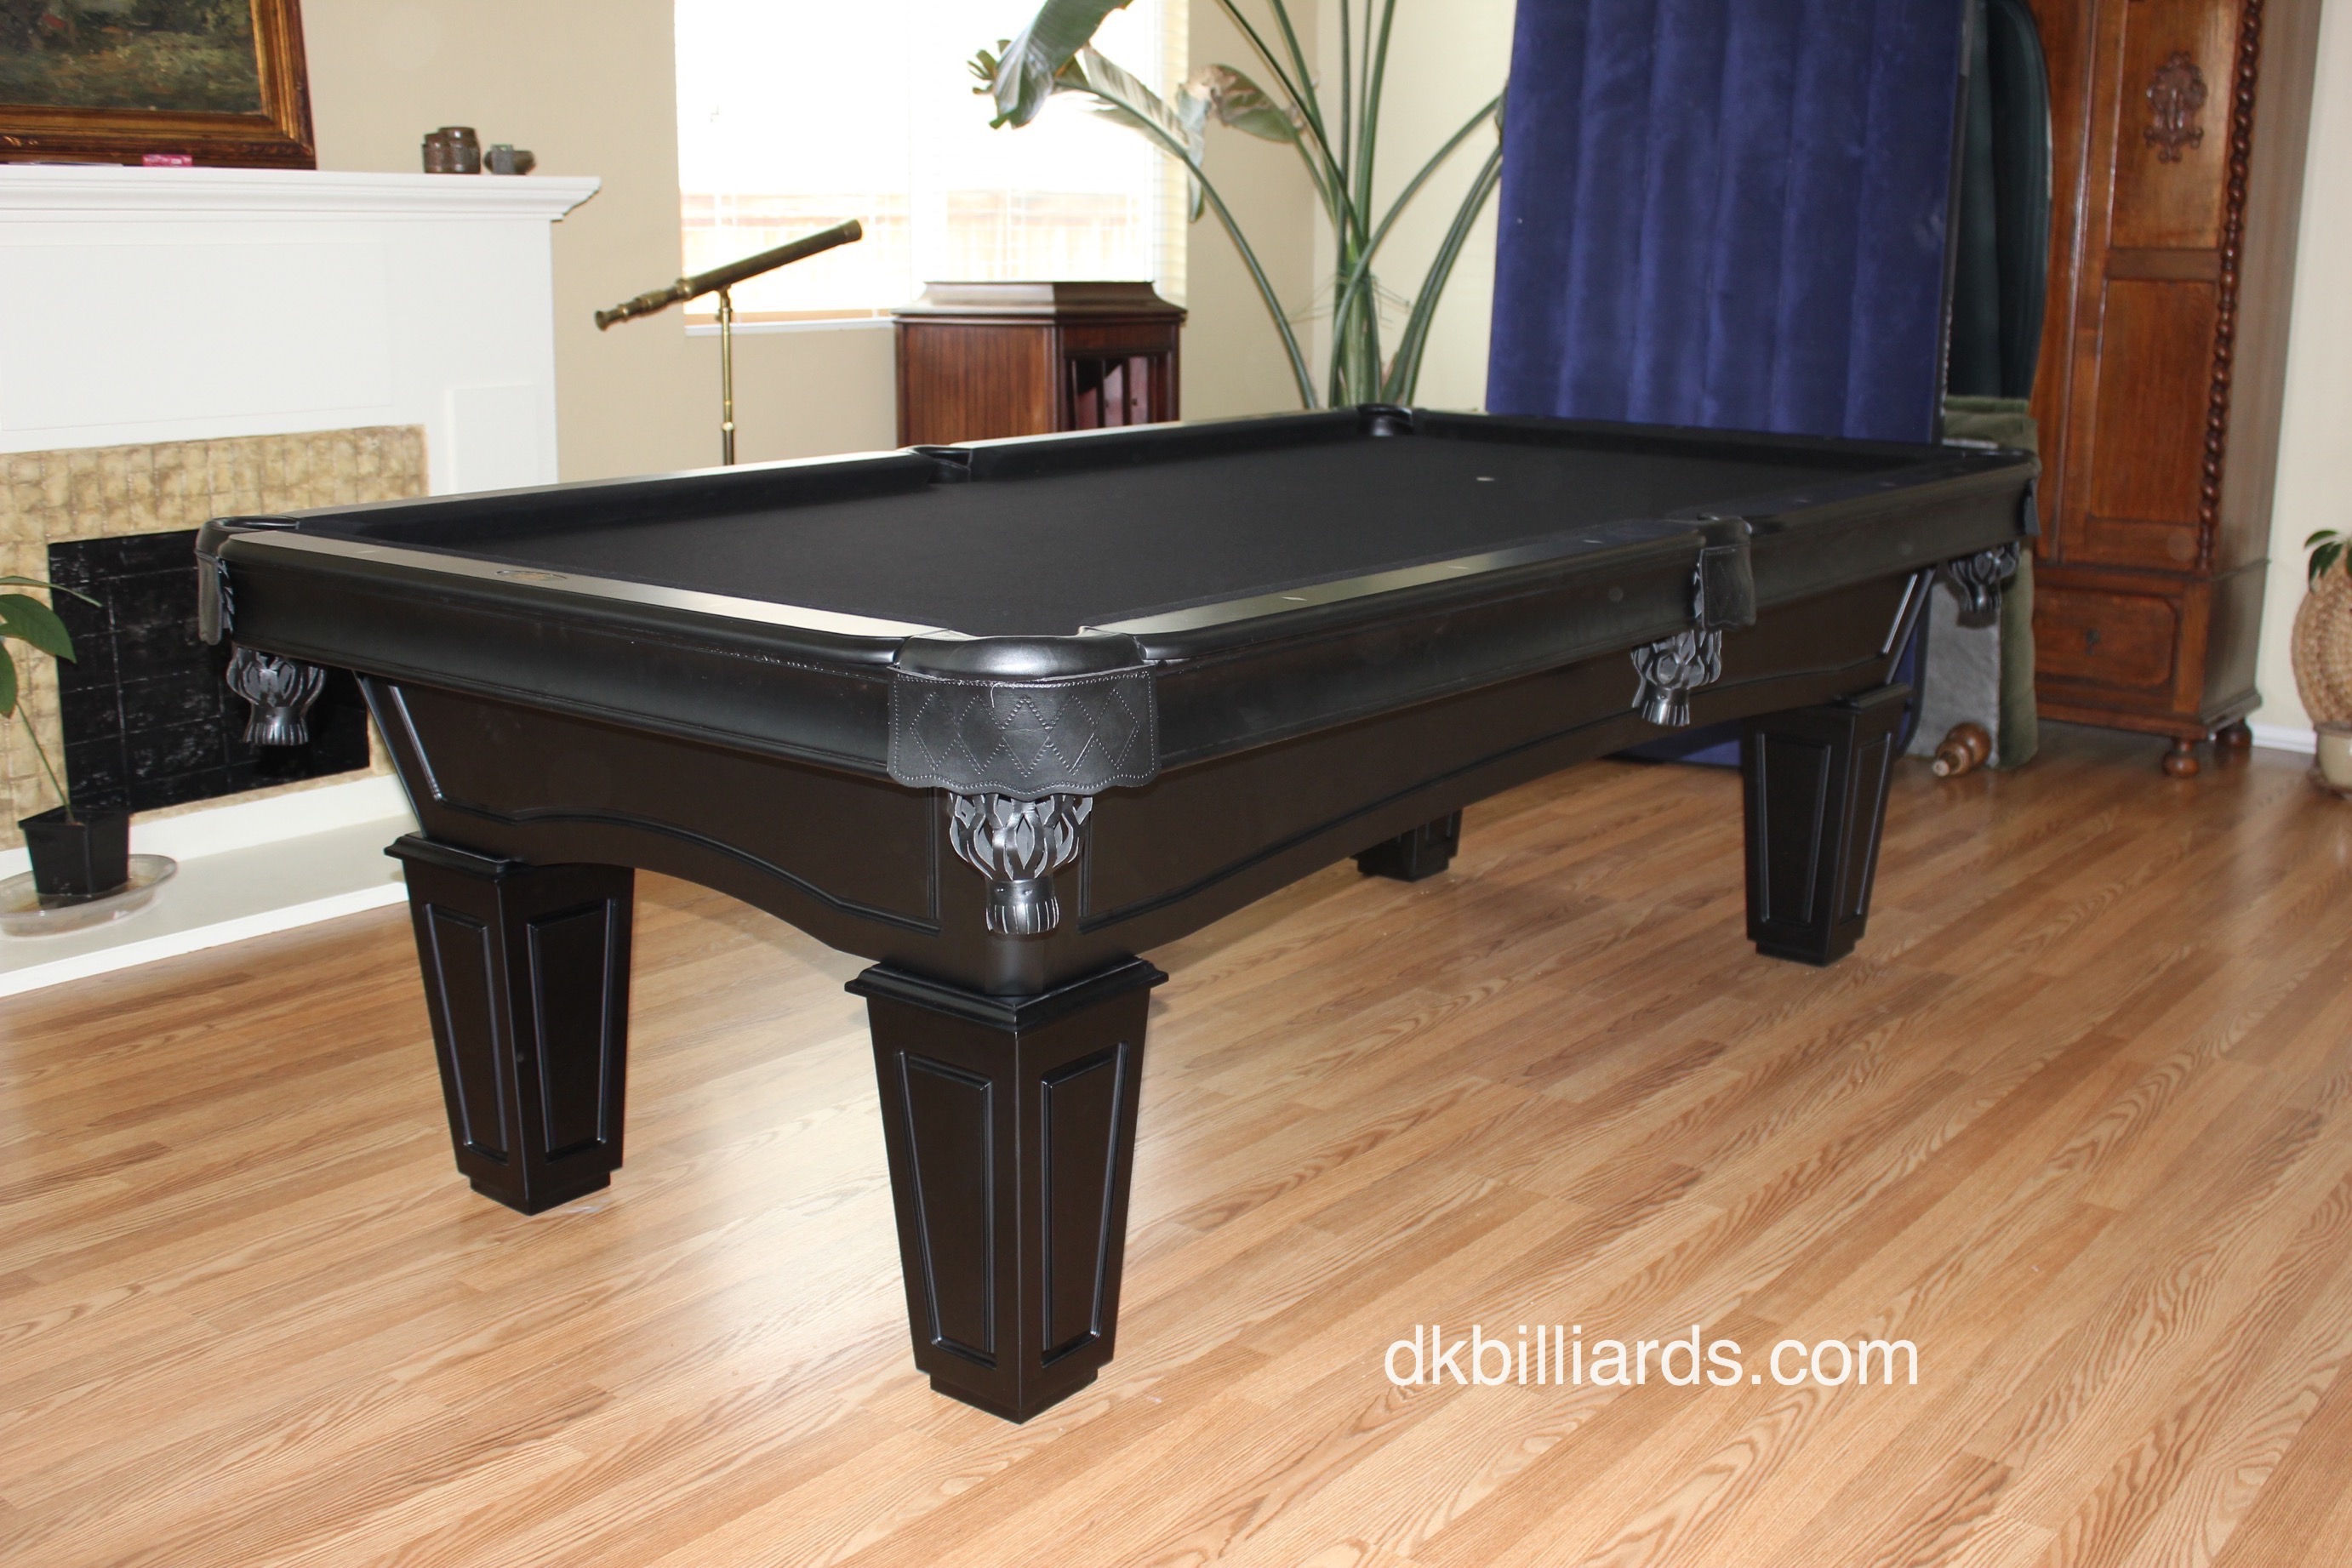 All Black Pool Table - DK Billiard Service, Pool Tables For Sale